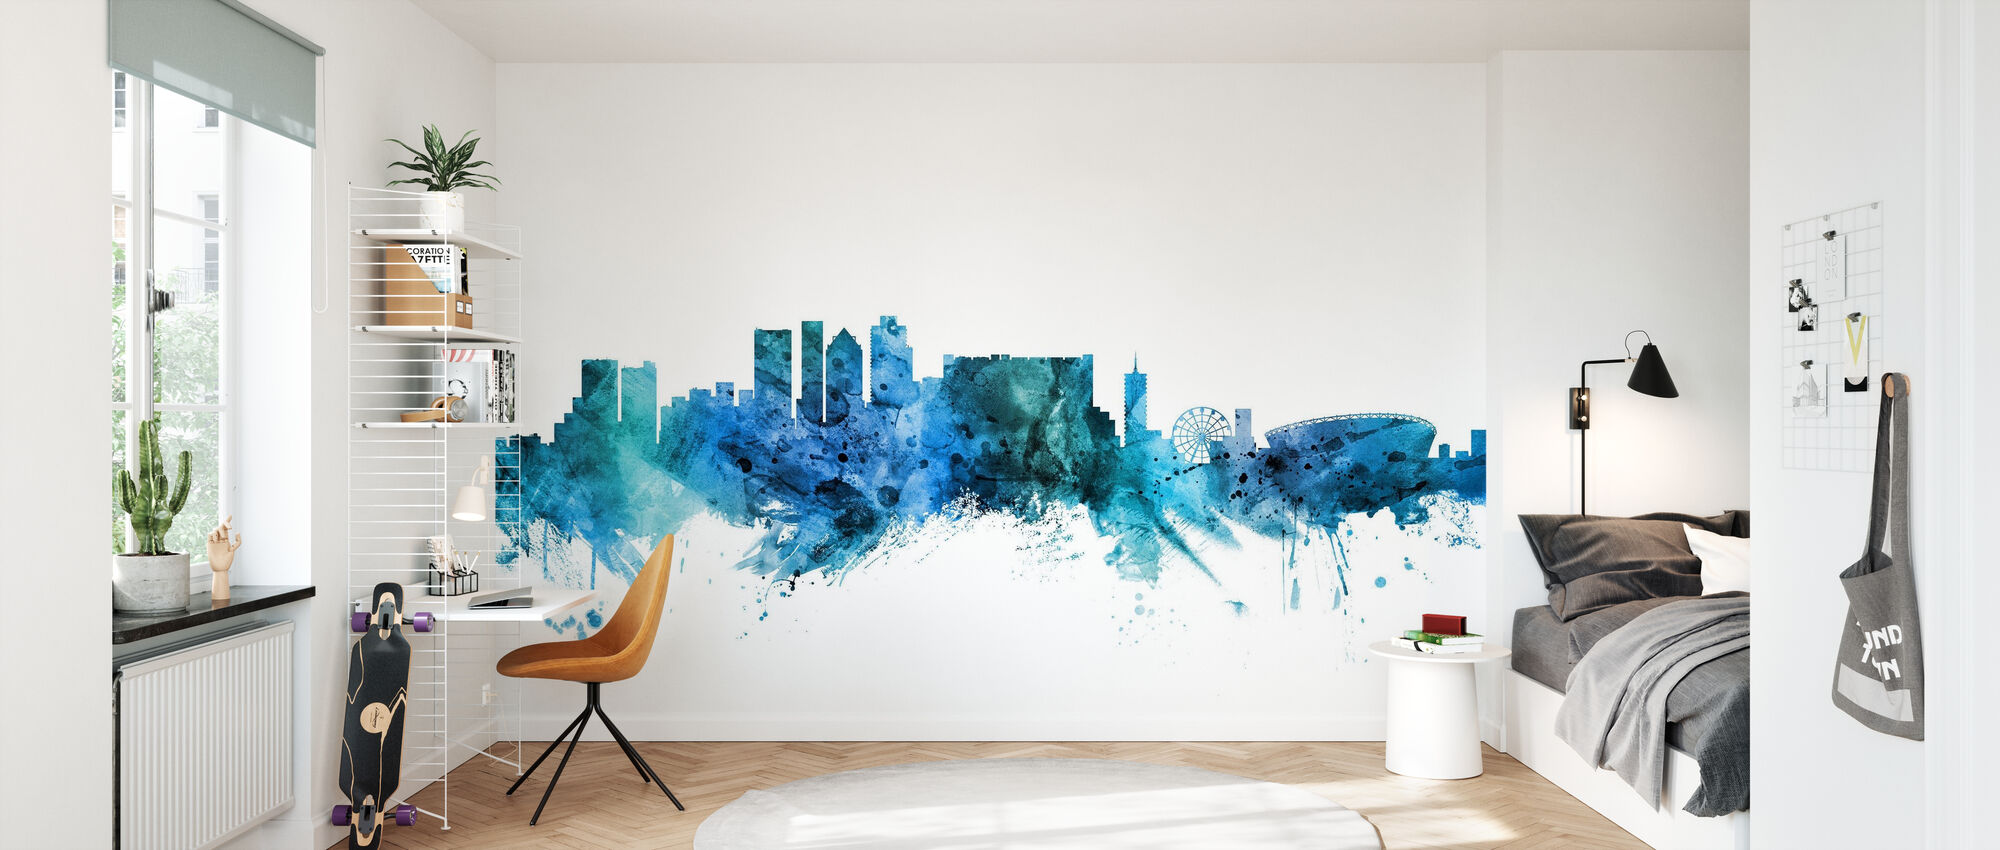 Cape Town South Africa Skyline - Wallpaper - Kids Room